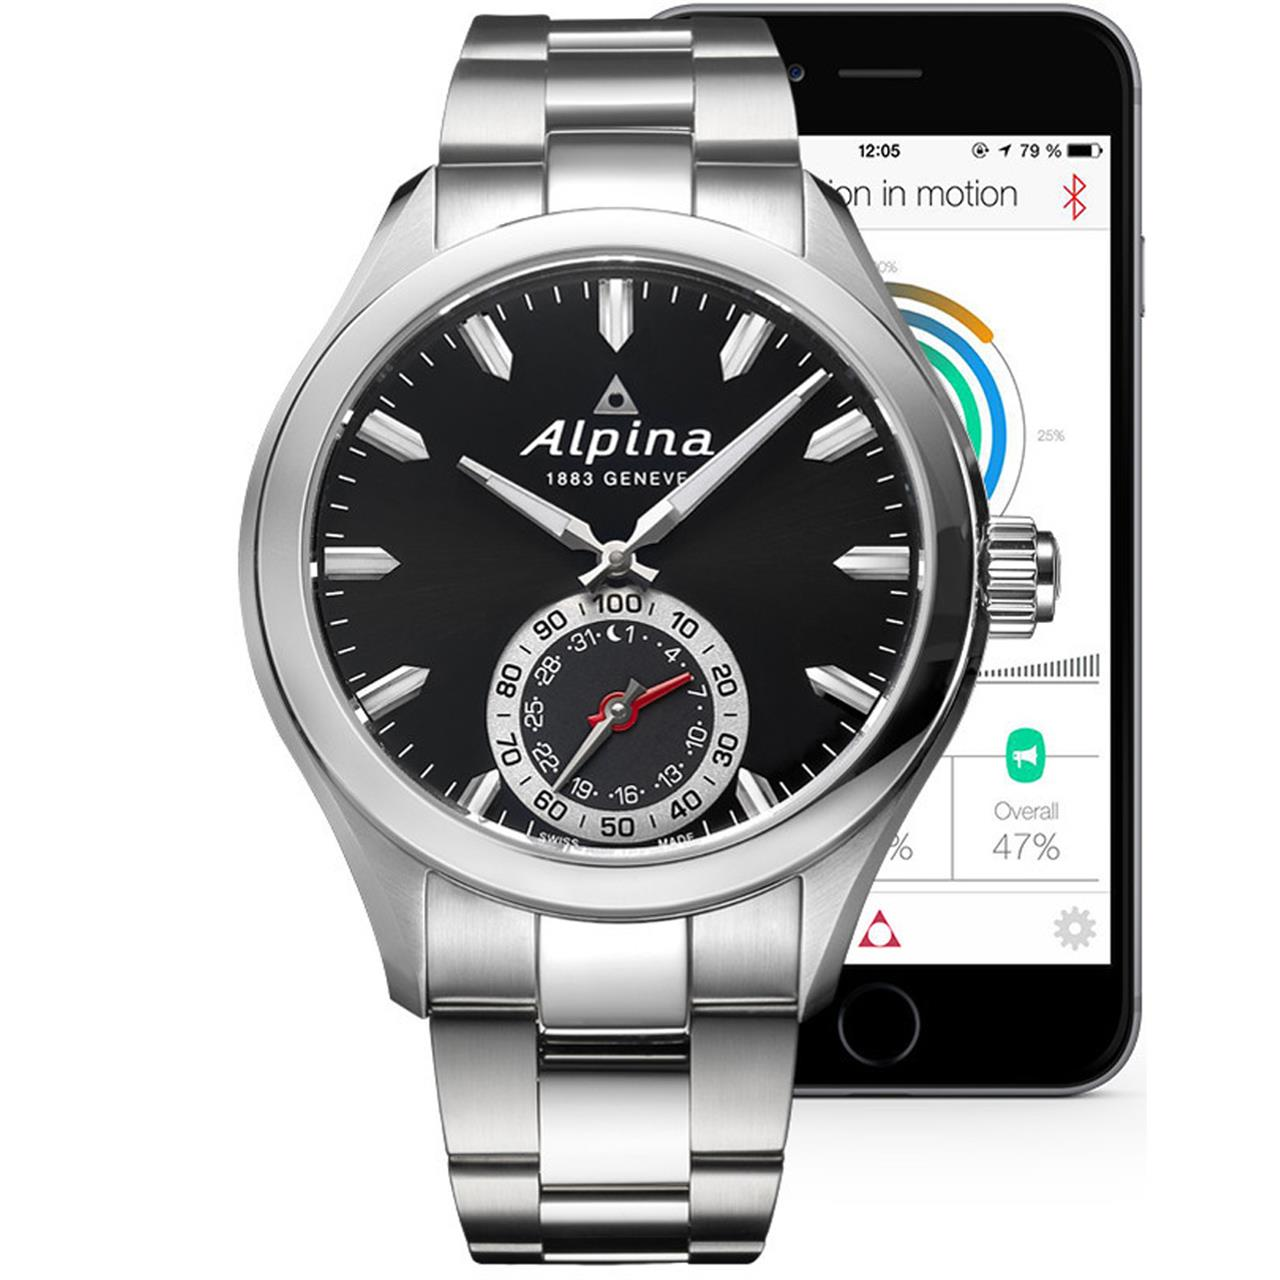 alpina smartwatch franzen d sseldorf onlineshop. Black Bedroom Furniture Sets. Home Design Ideas